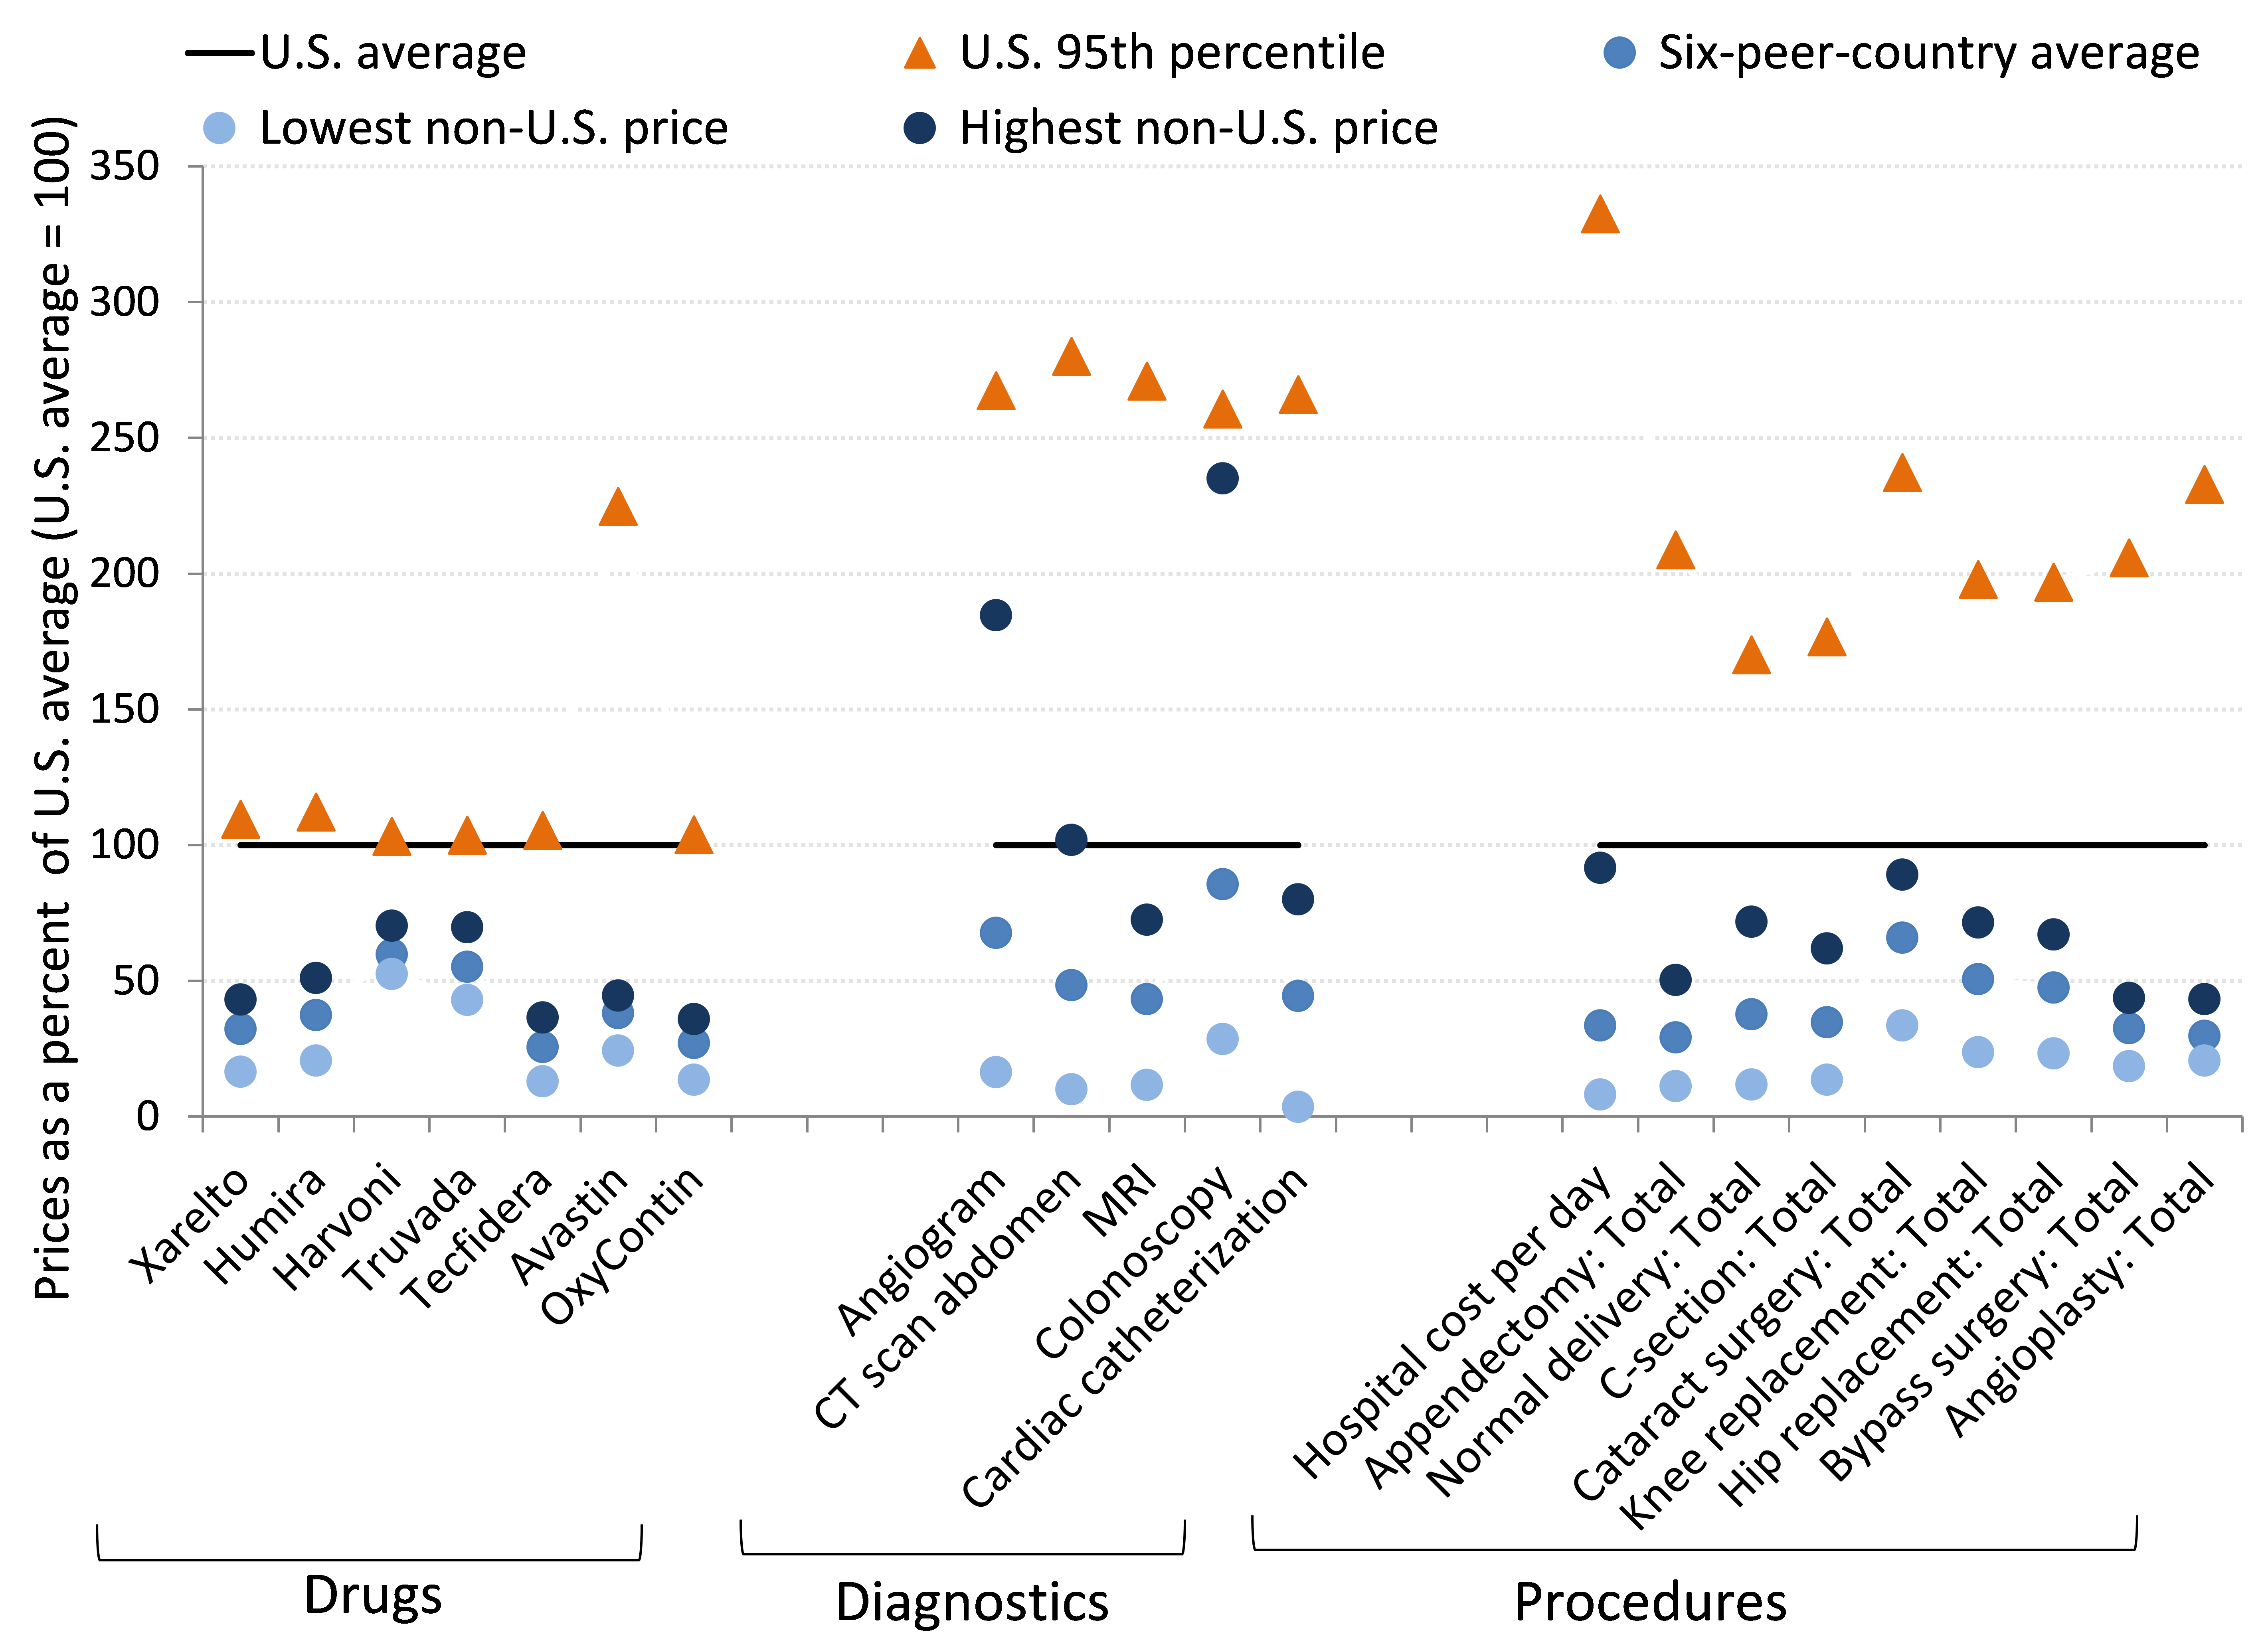 Health care prices are almost uniformly higher in the U.S.—sometimes staggeringly so: Prices of various health care goods and services in the United States compared with prices among advanced peer countries, 2015